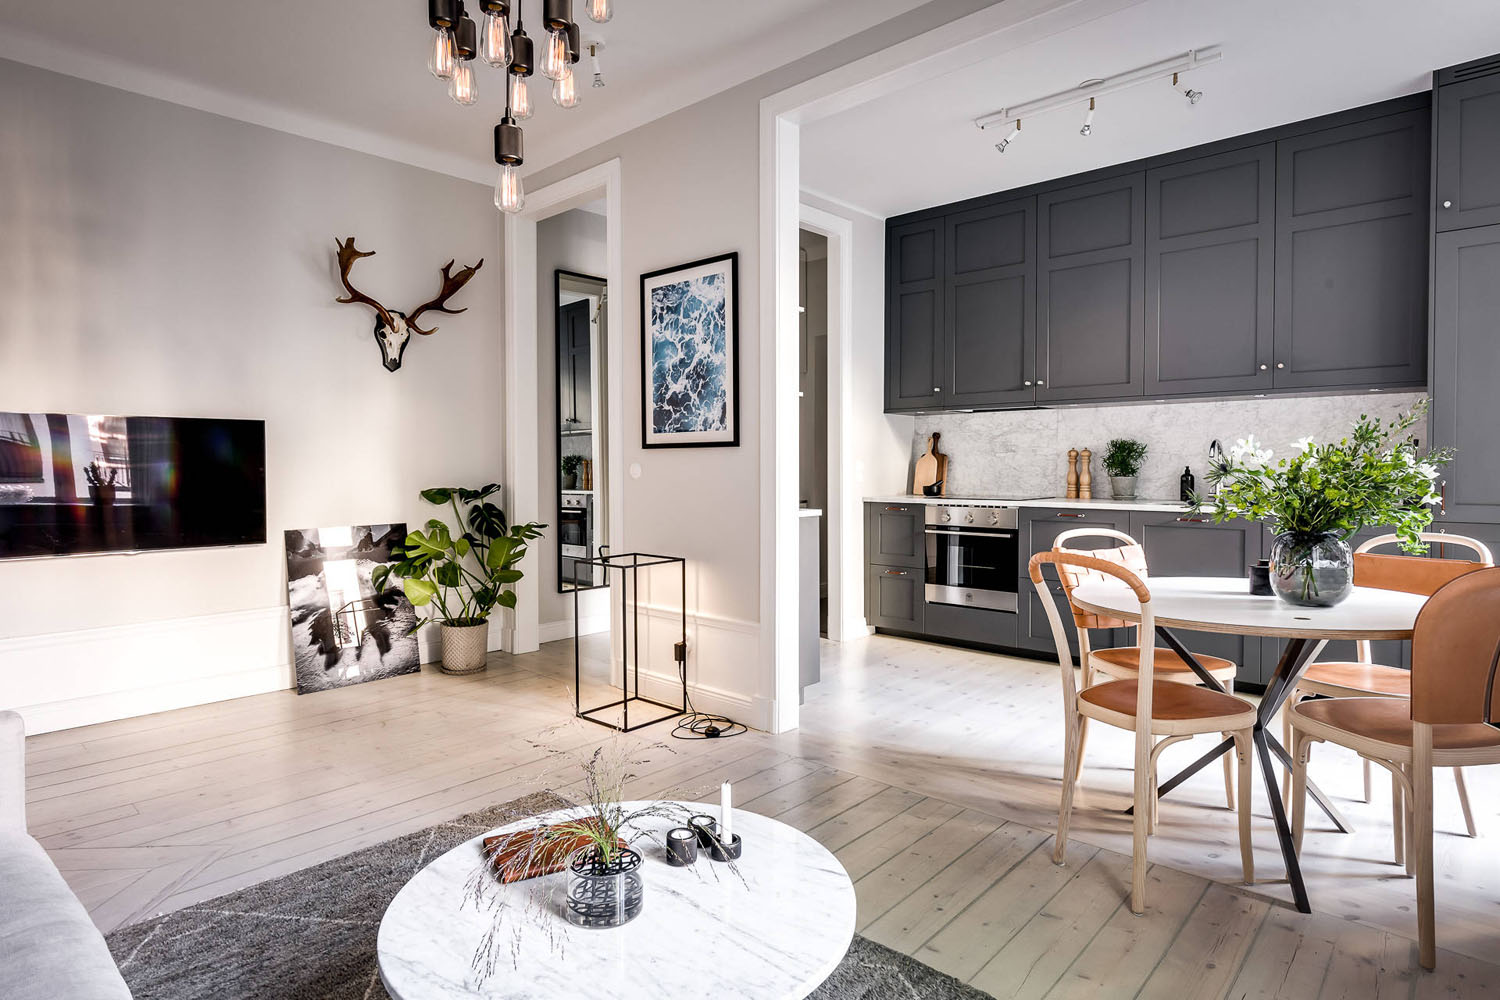 Luxurious-Contemporary-Small-One-Bedroom-Apartment-Sweden_1.jpg